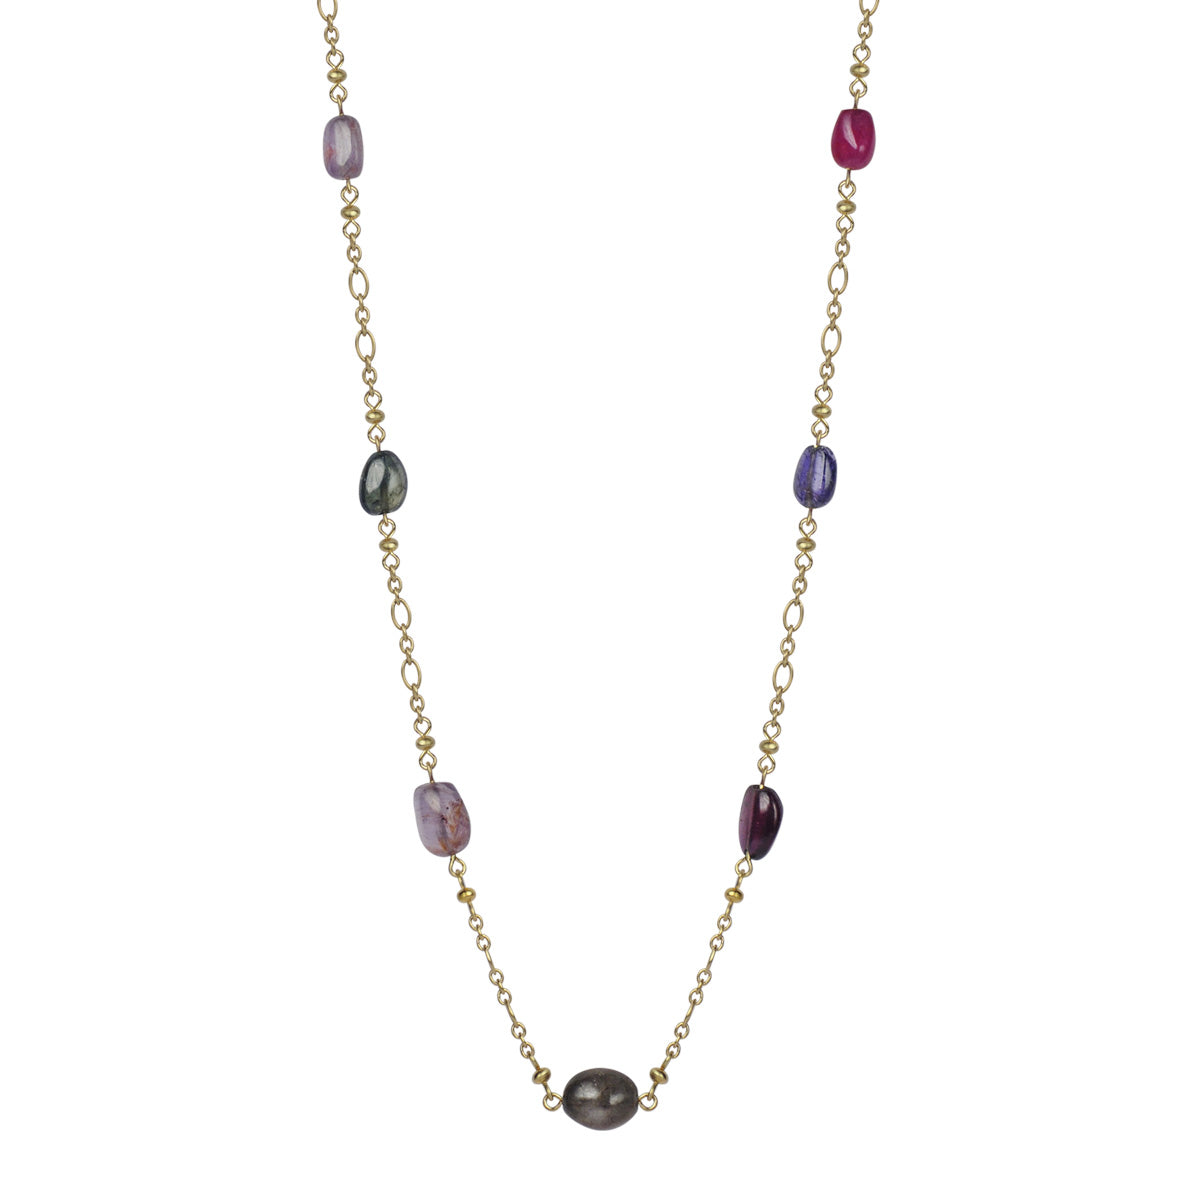 18K Gold Tumbled Multi Colored Sapphire Chain